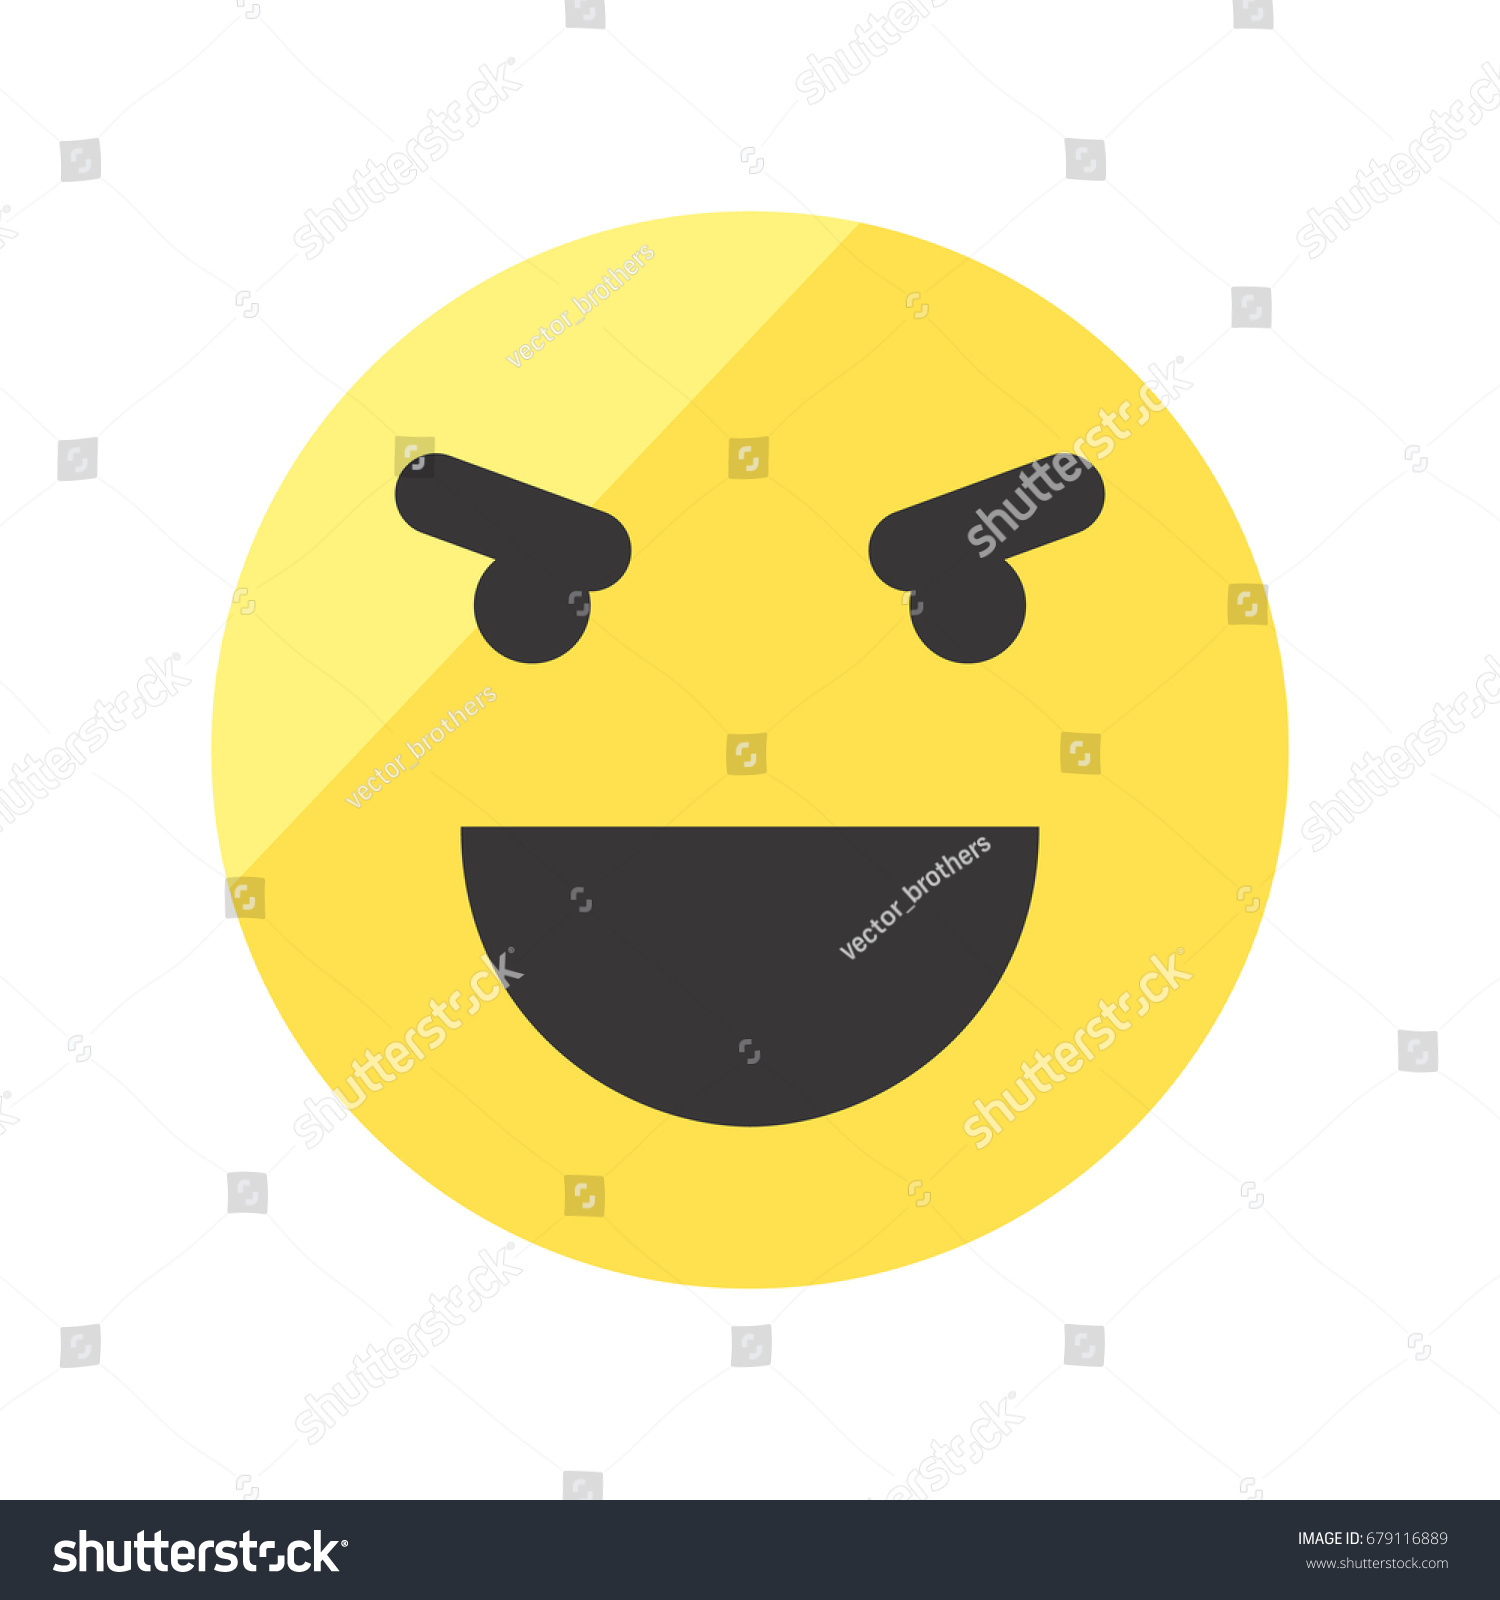 Colored evil laugh smiley icon emoji stock illustration 679116889 colored evil laugh smiley icon emoji smiley biocorpaavc Images